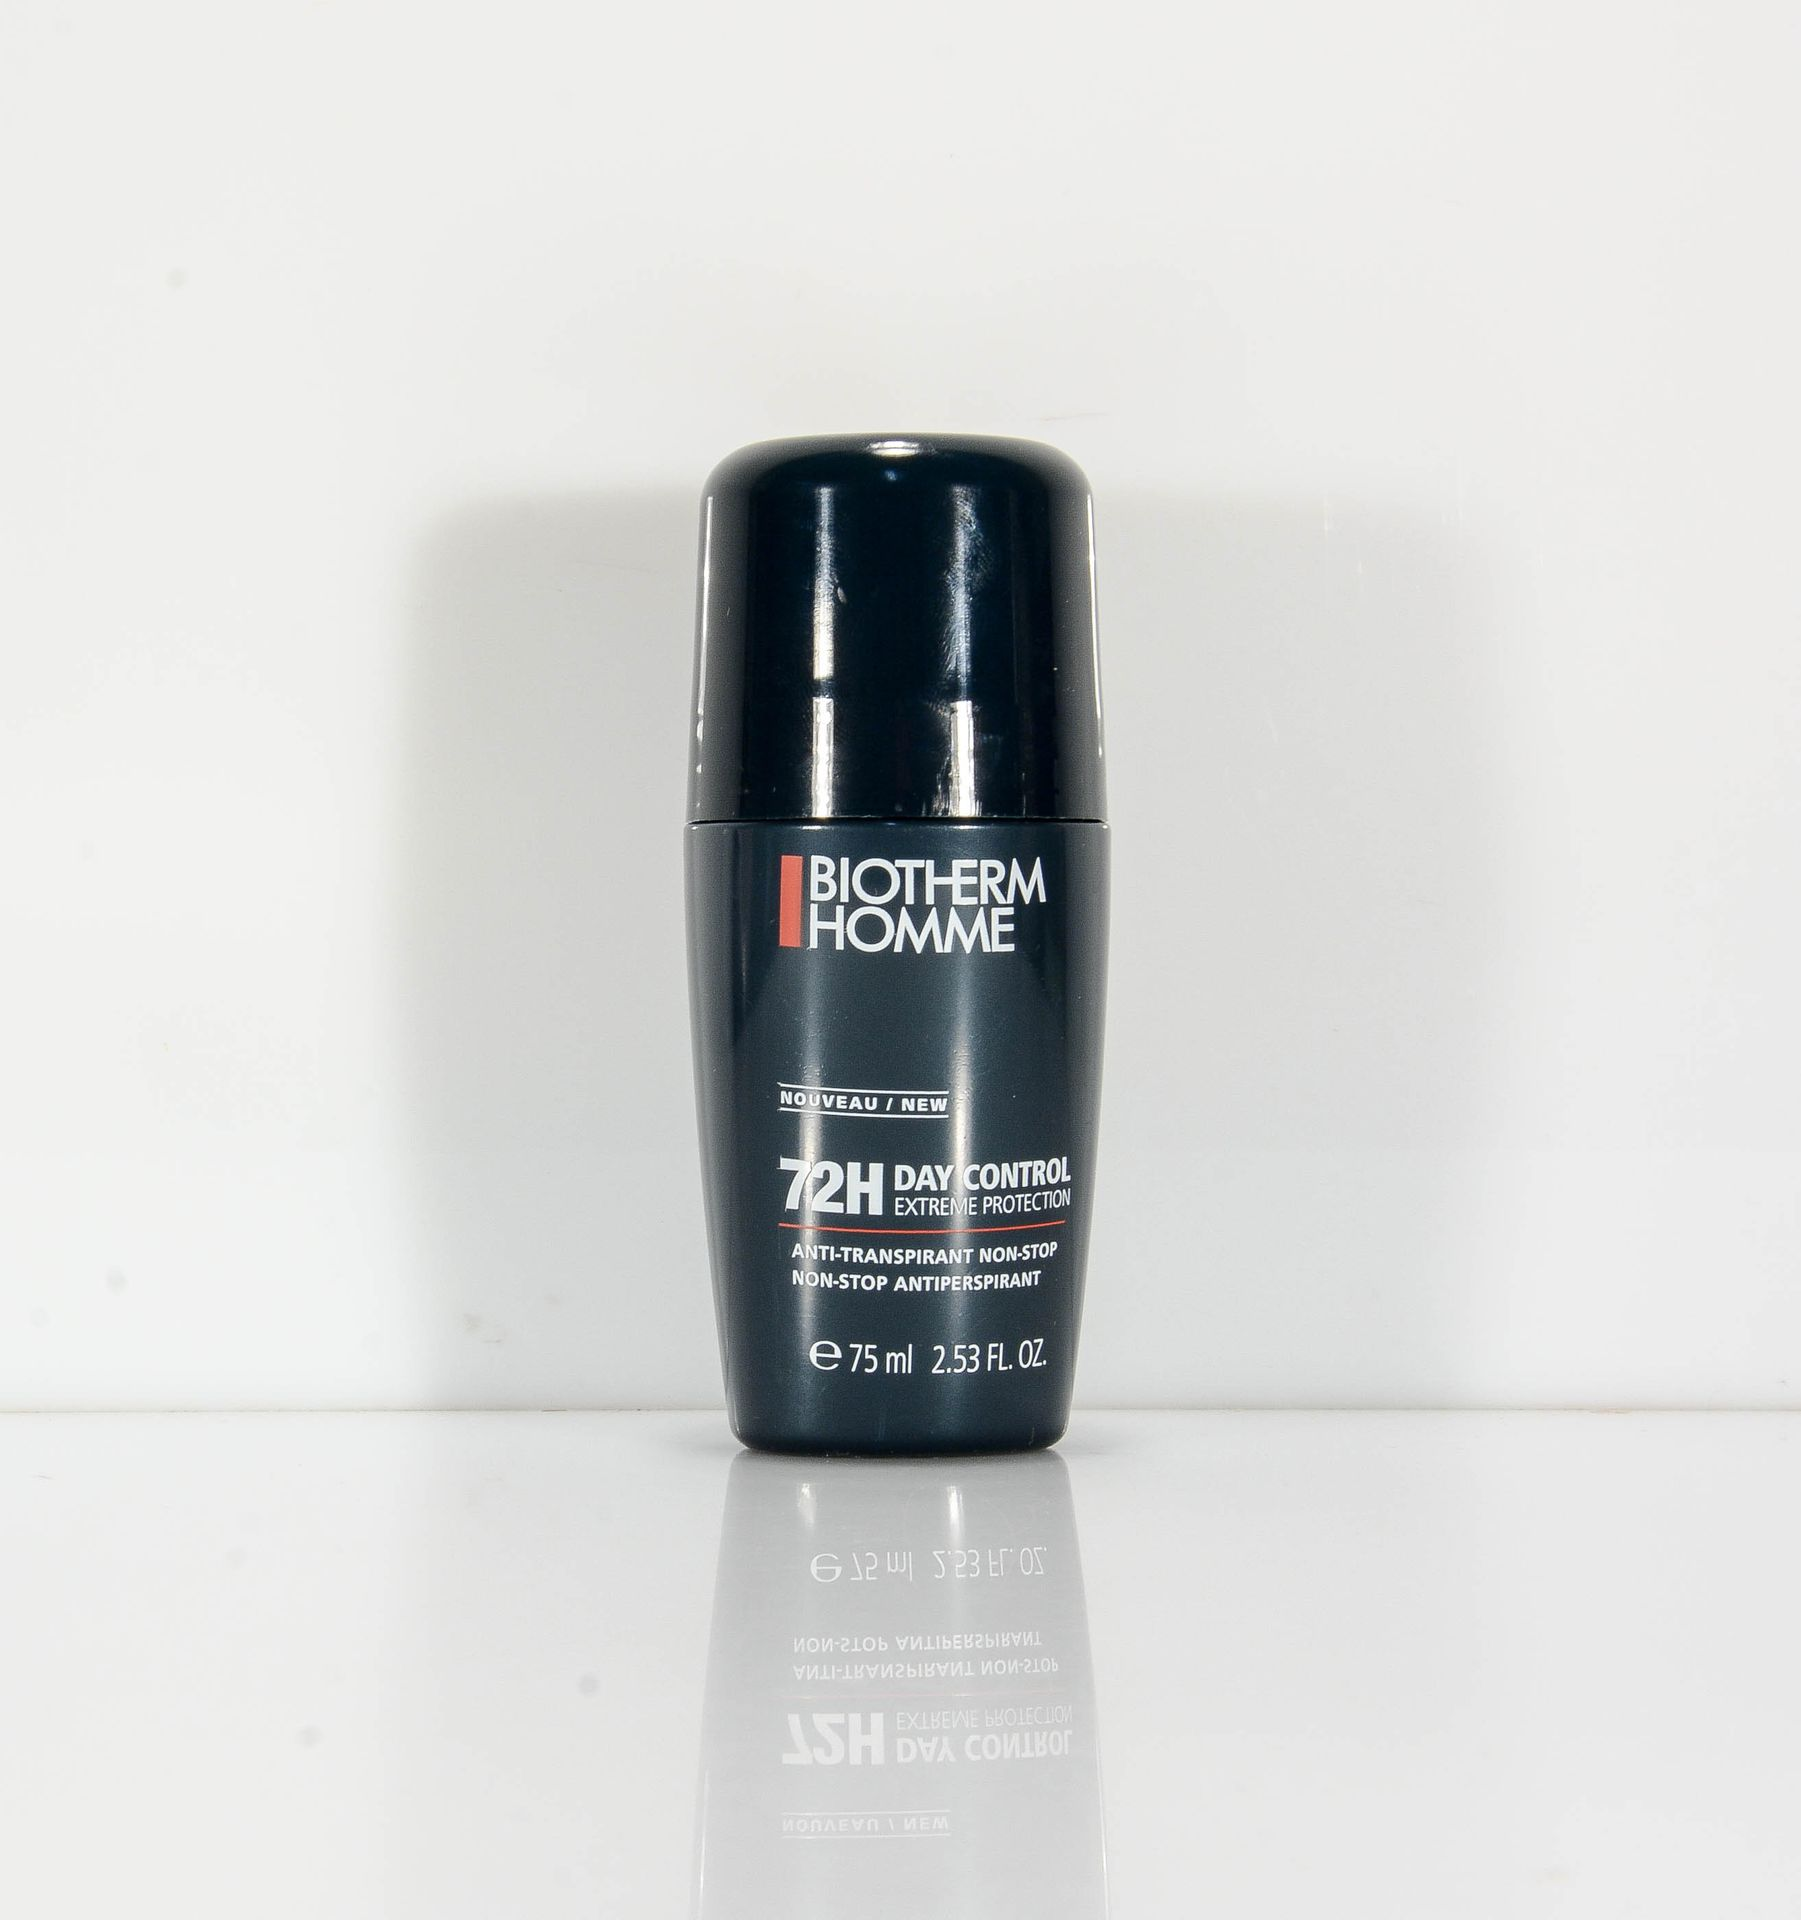 Biotherm Homme Day Control Extreme Protection 72 h Deo Roller 75 ml